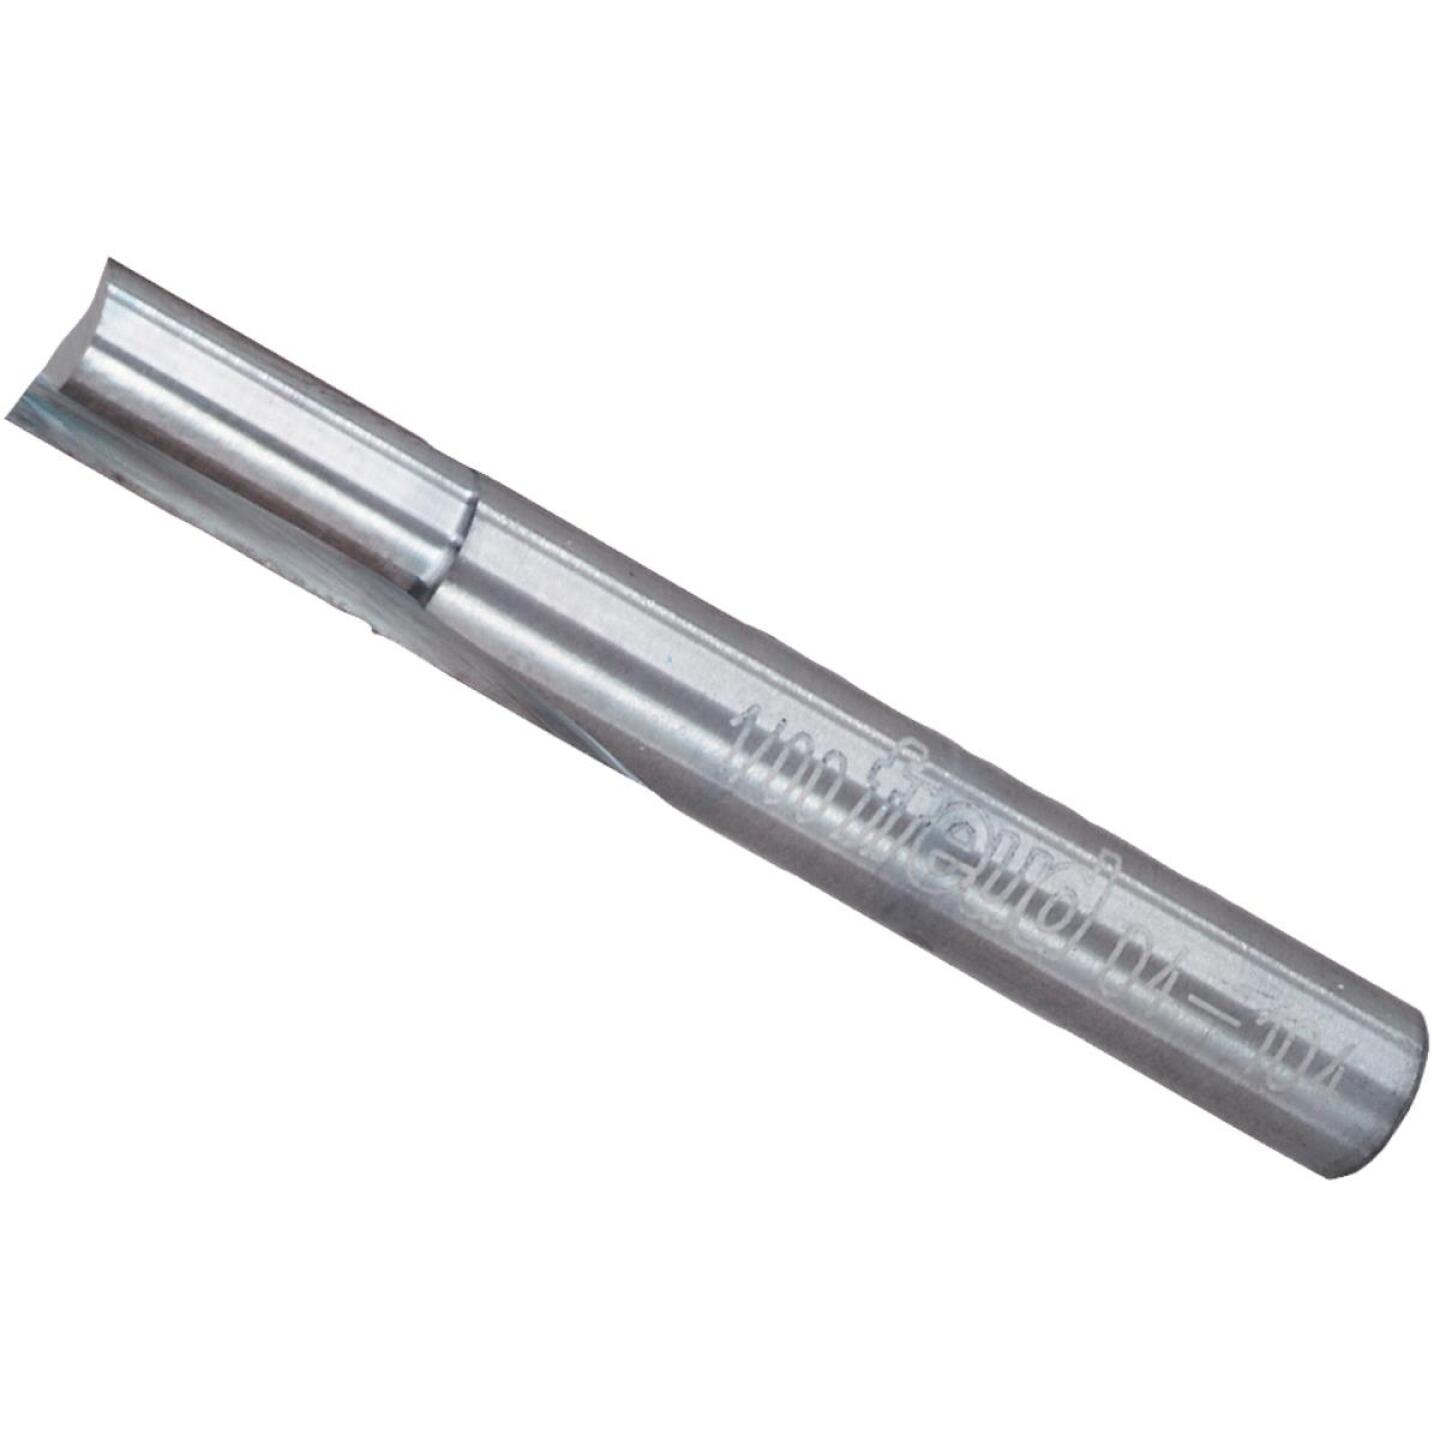 Freud Carbide Tip 1/4 In. Double Flute Straight Bit Image 1